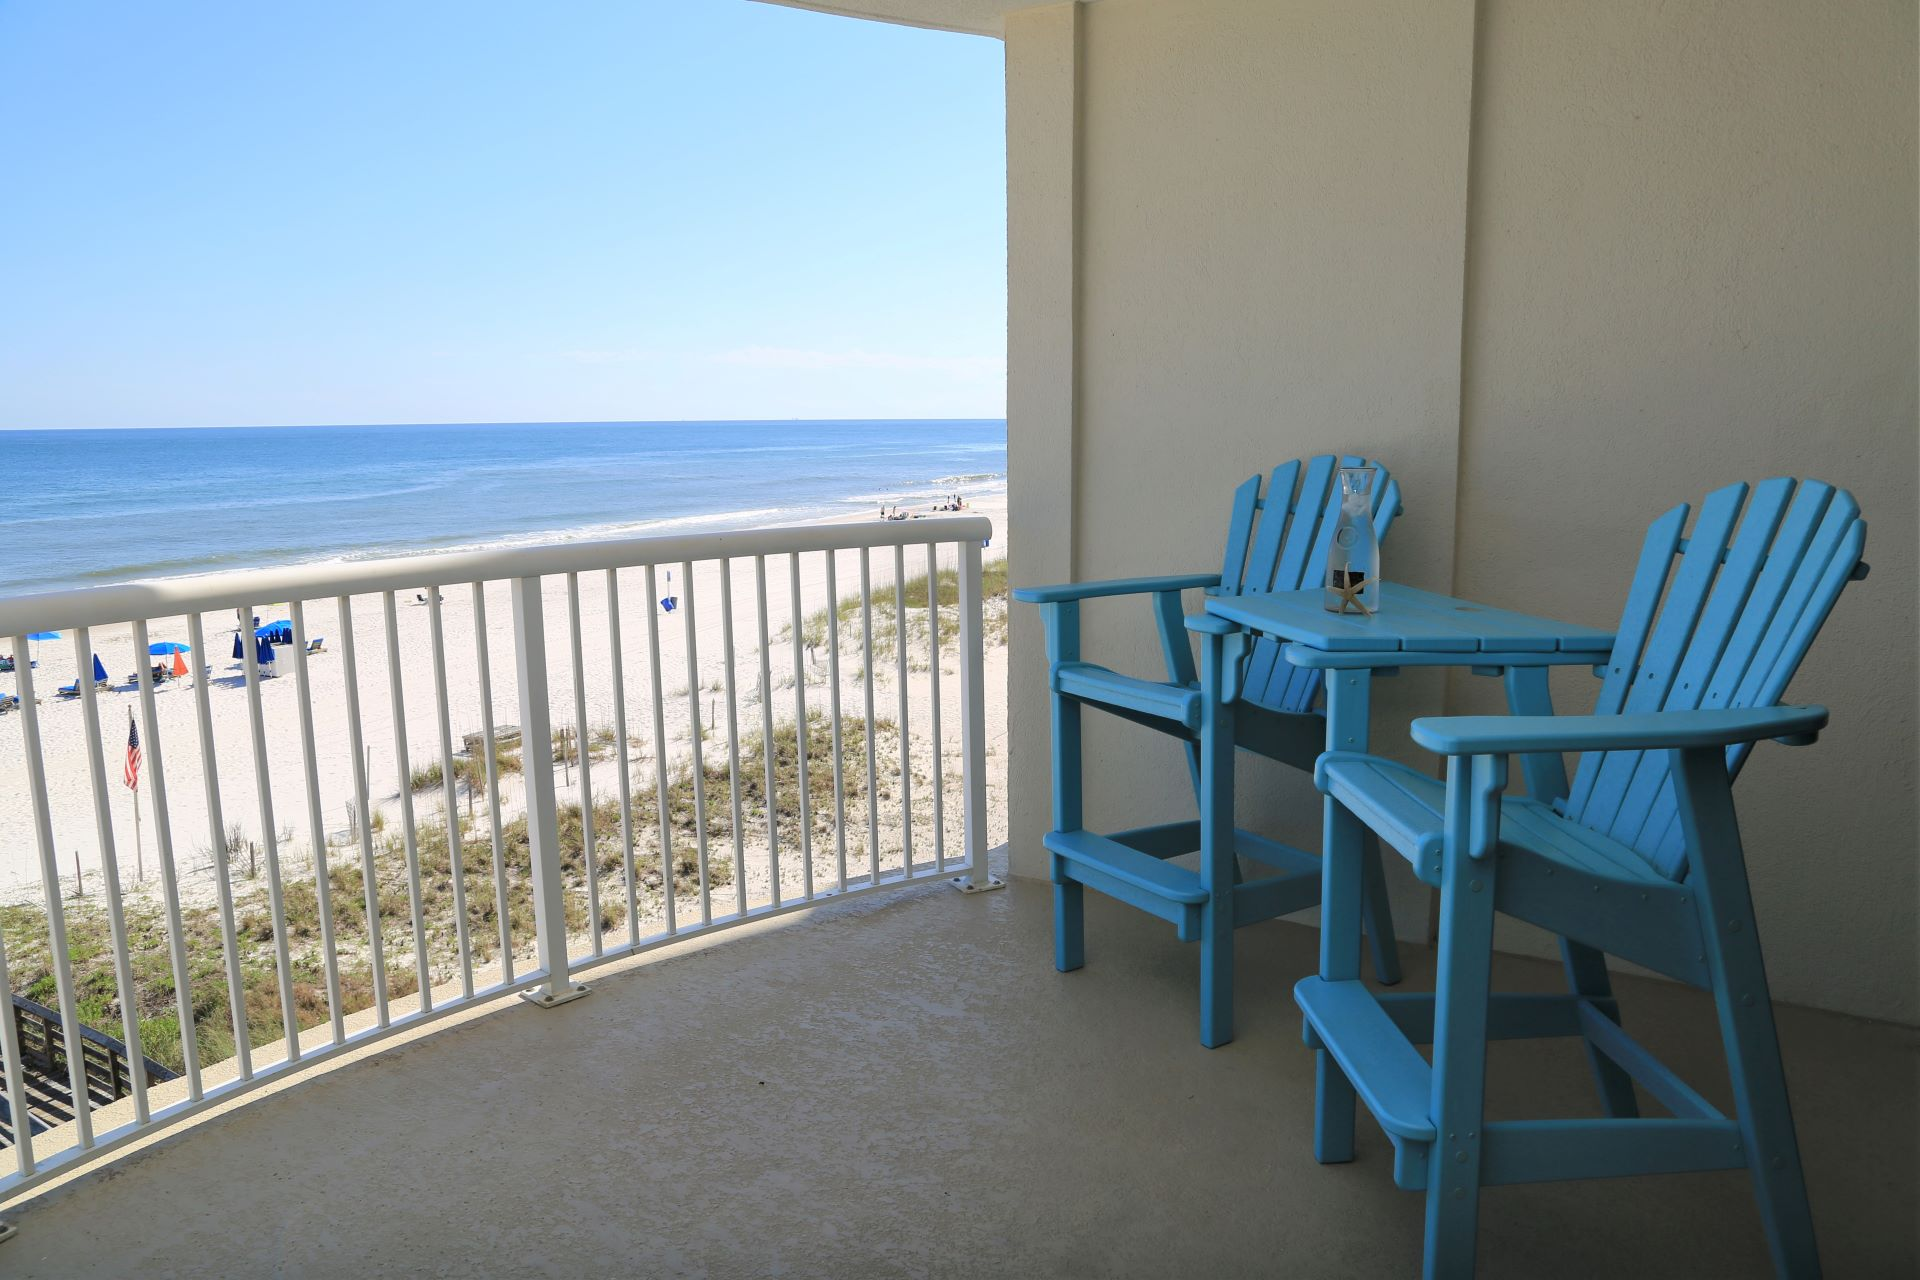 The balcony furniture provides height for optimal beach and